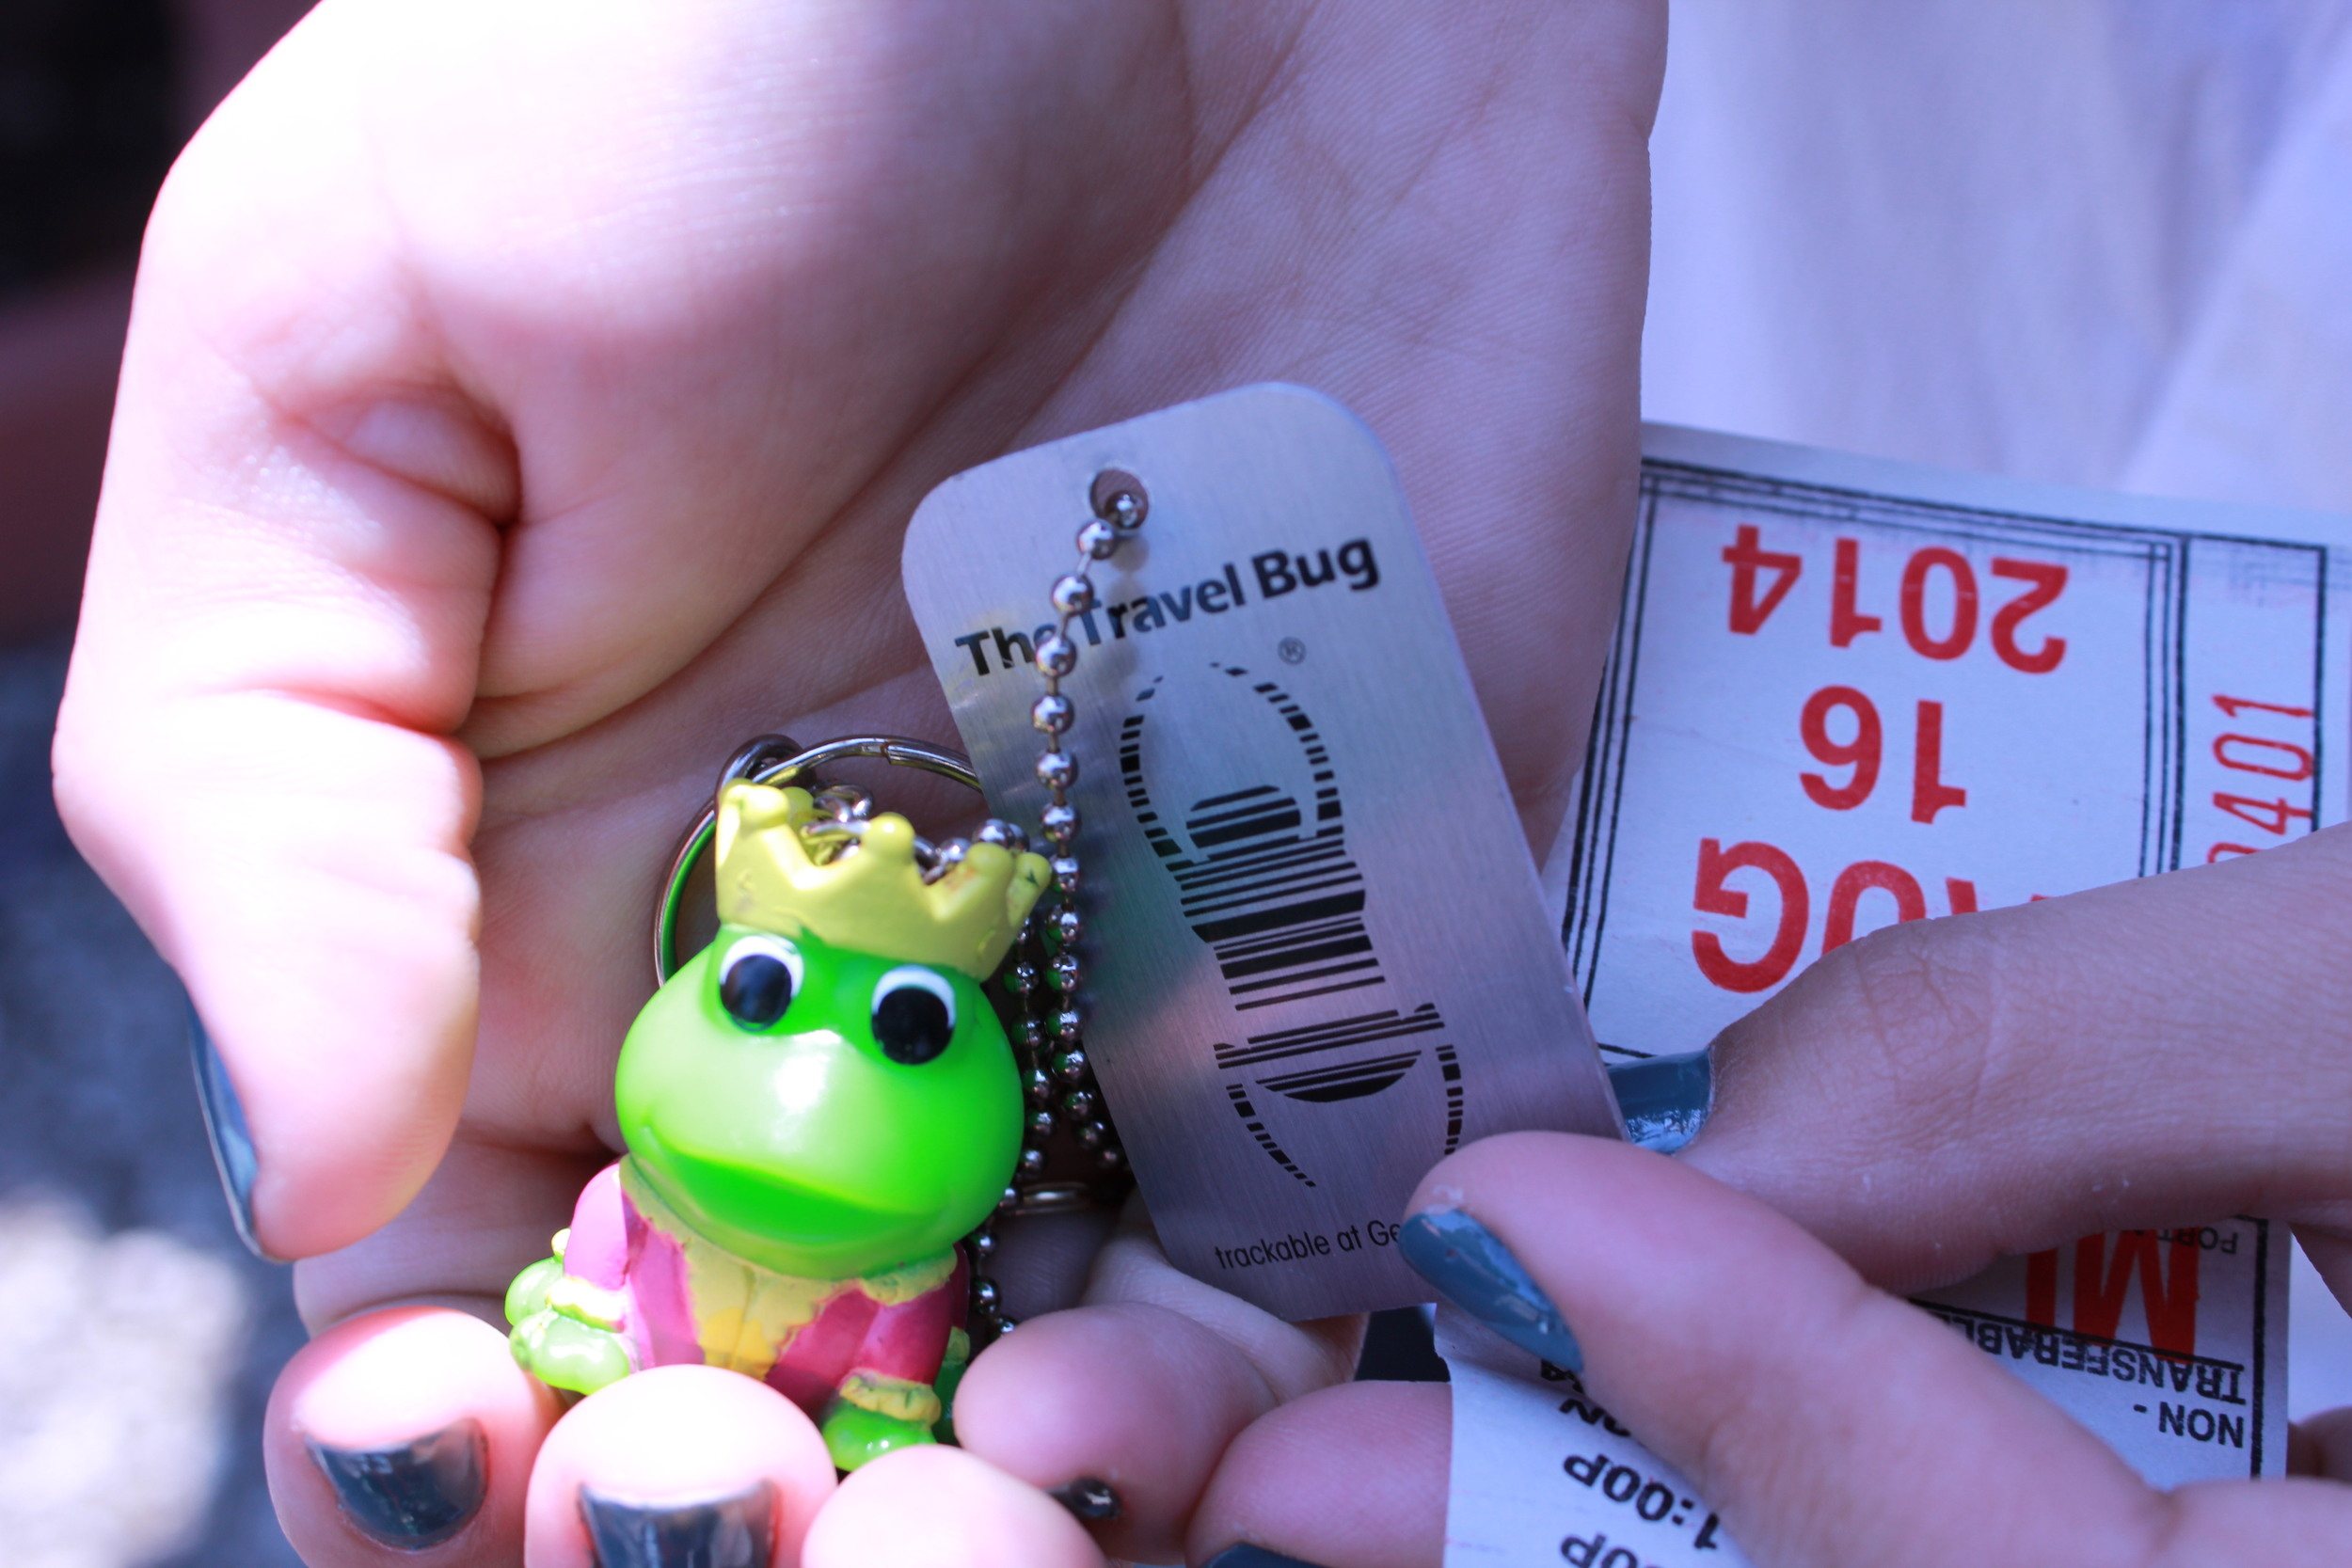 A Travel Bug of Geocaching